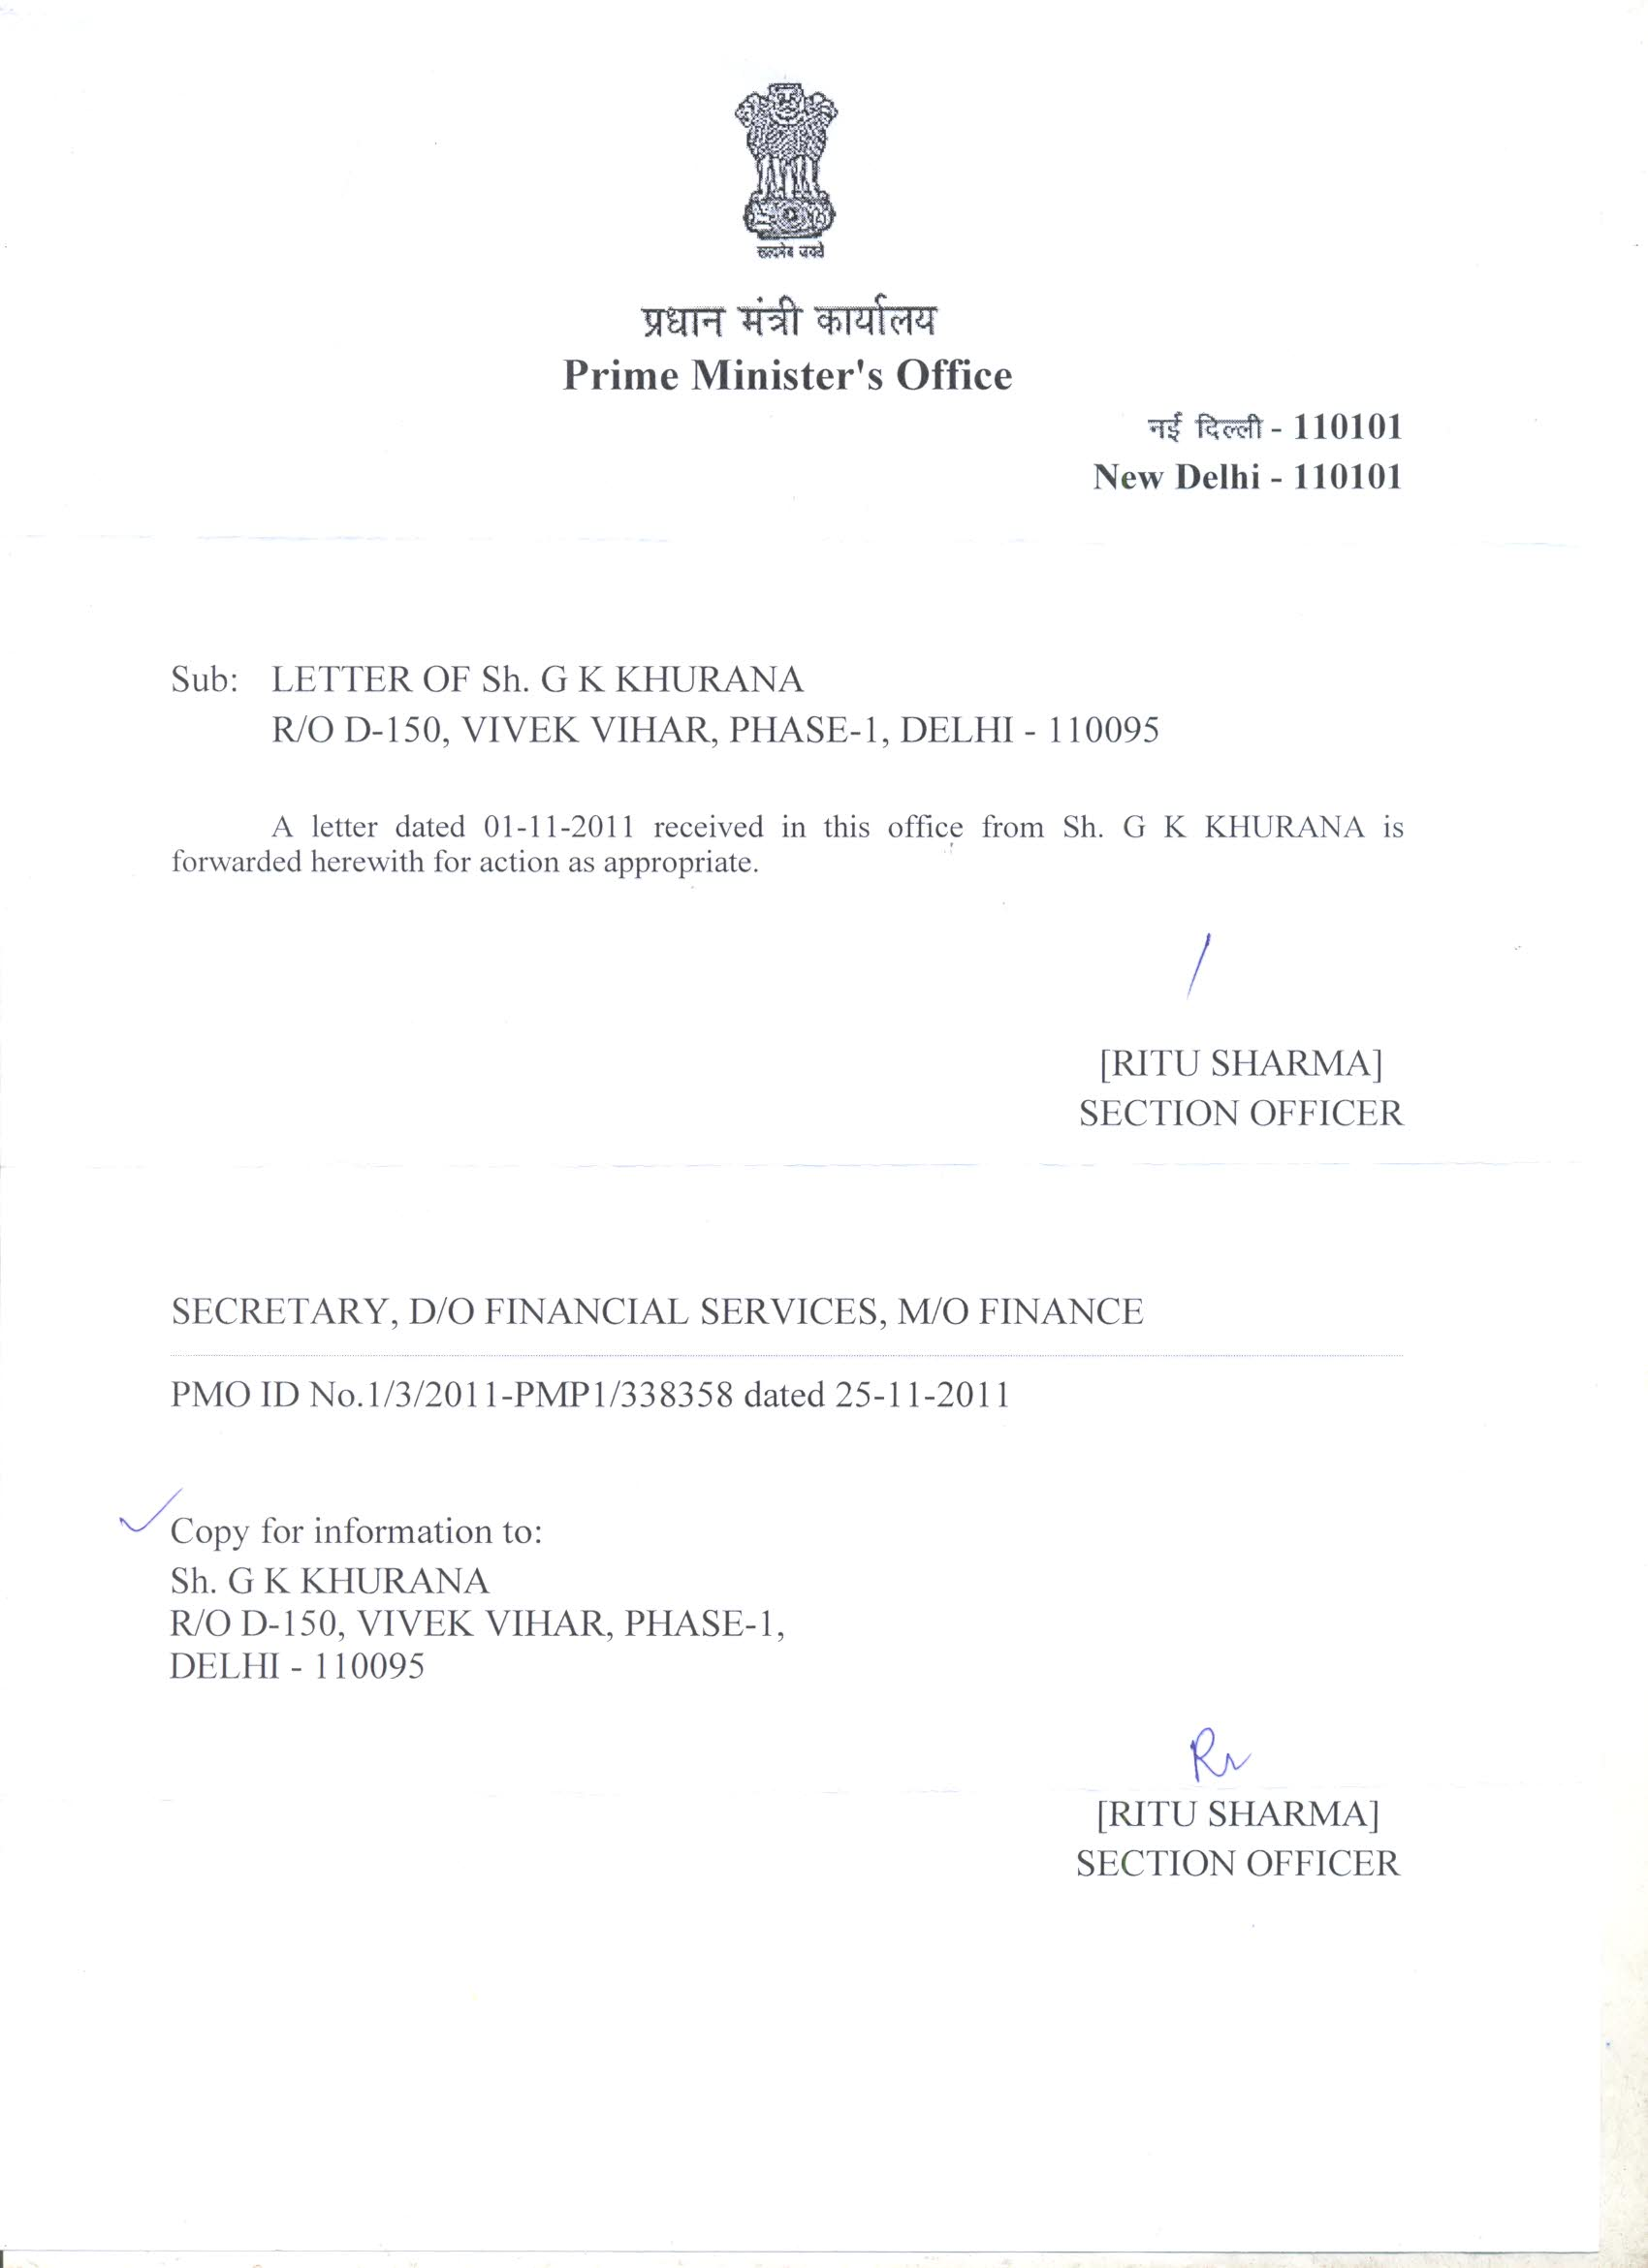 CLICK HERE TO SEE THE ACKNOWLEDGMENT OF THE LETTER BY PM OFFICE